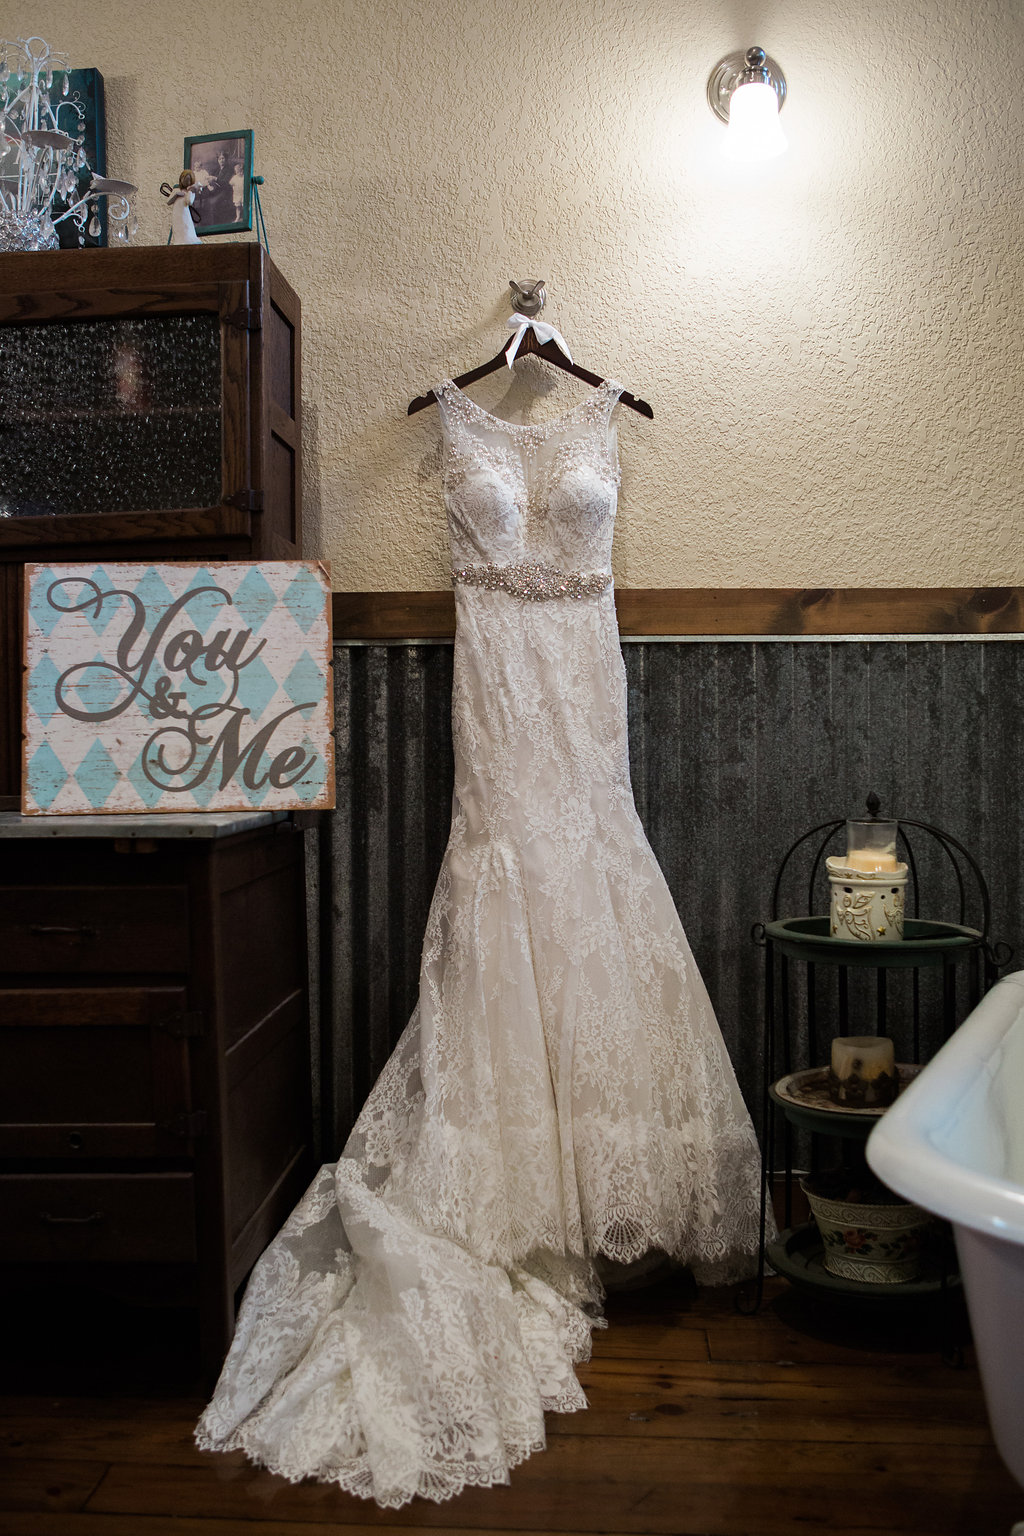 Southern Elegant Wedding at Avalon Legacy Ranch in McKinney, Tx - Forever Events and Weddings